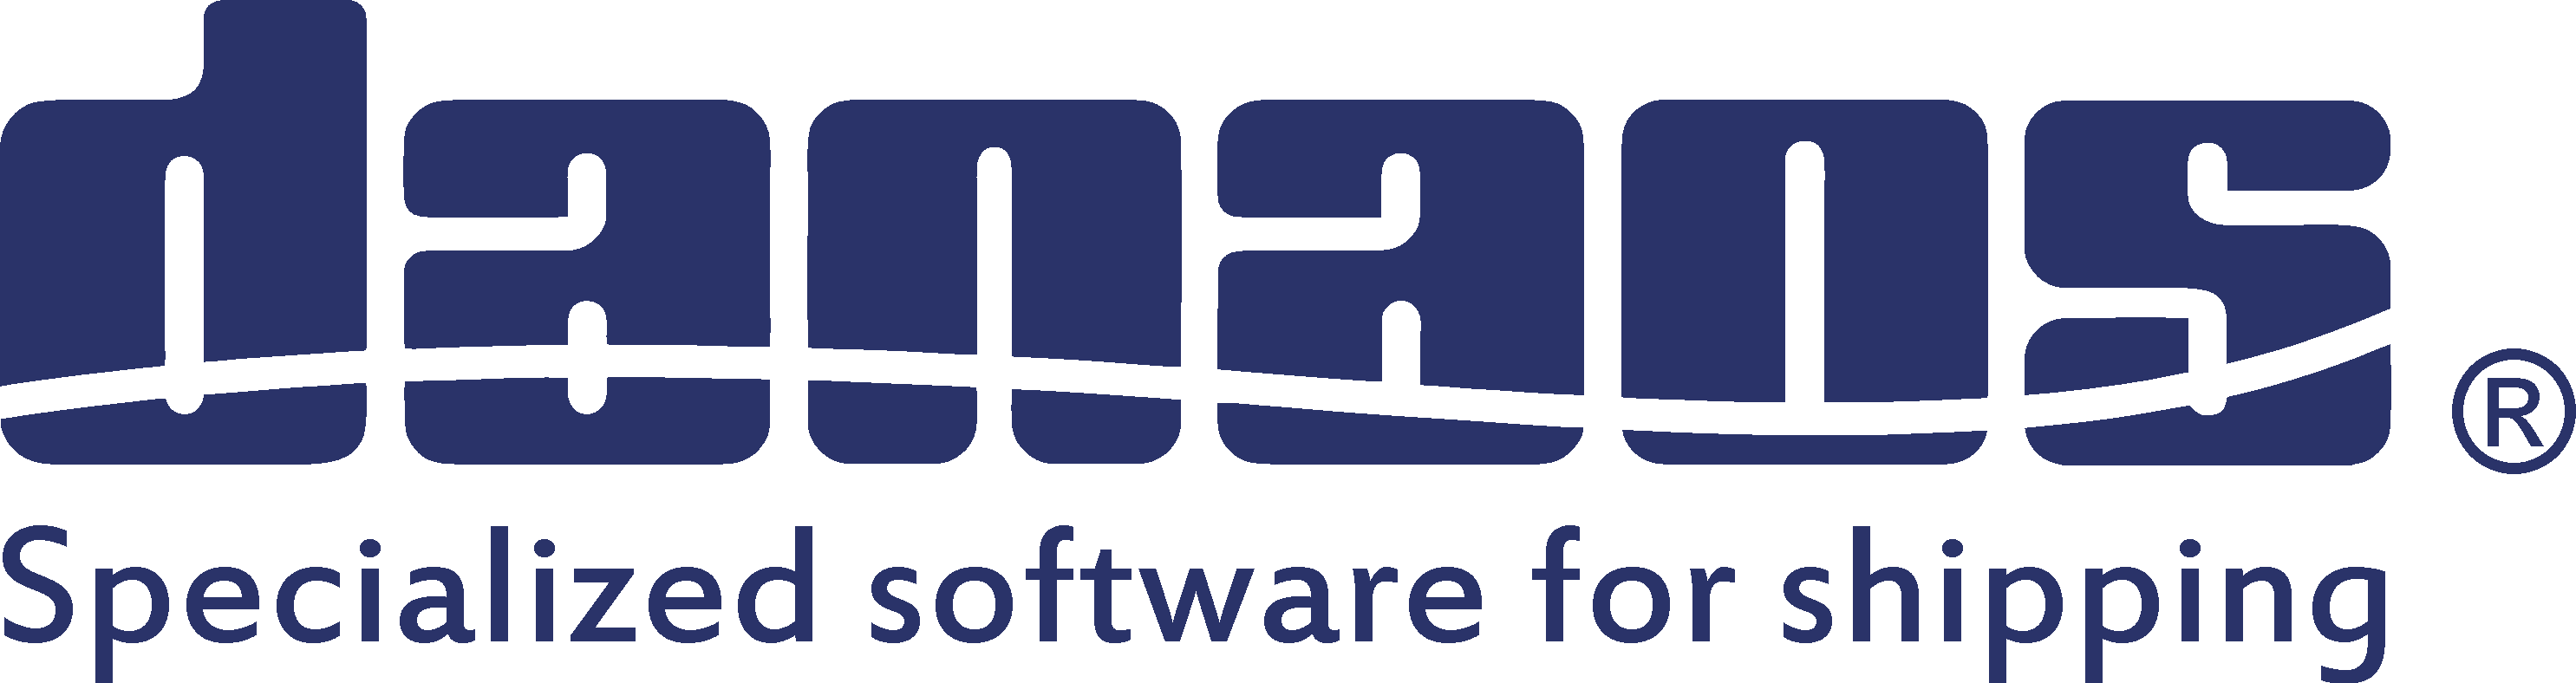 danaos_software_r-2.png